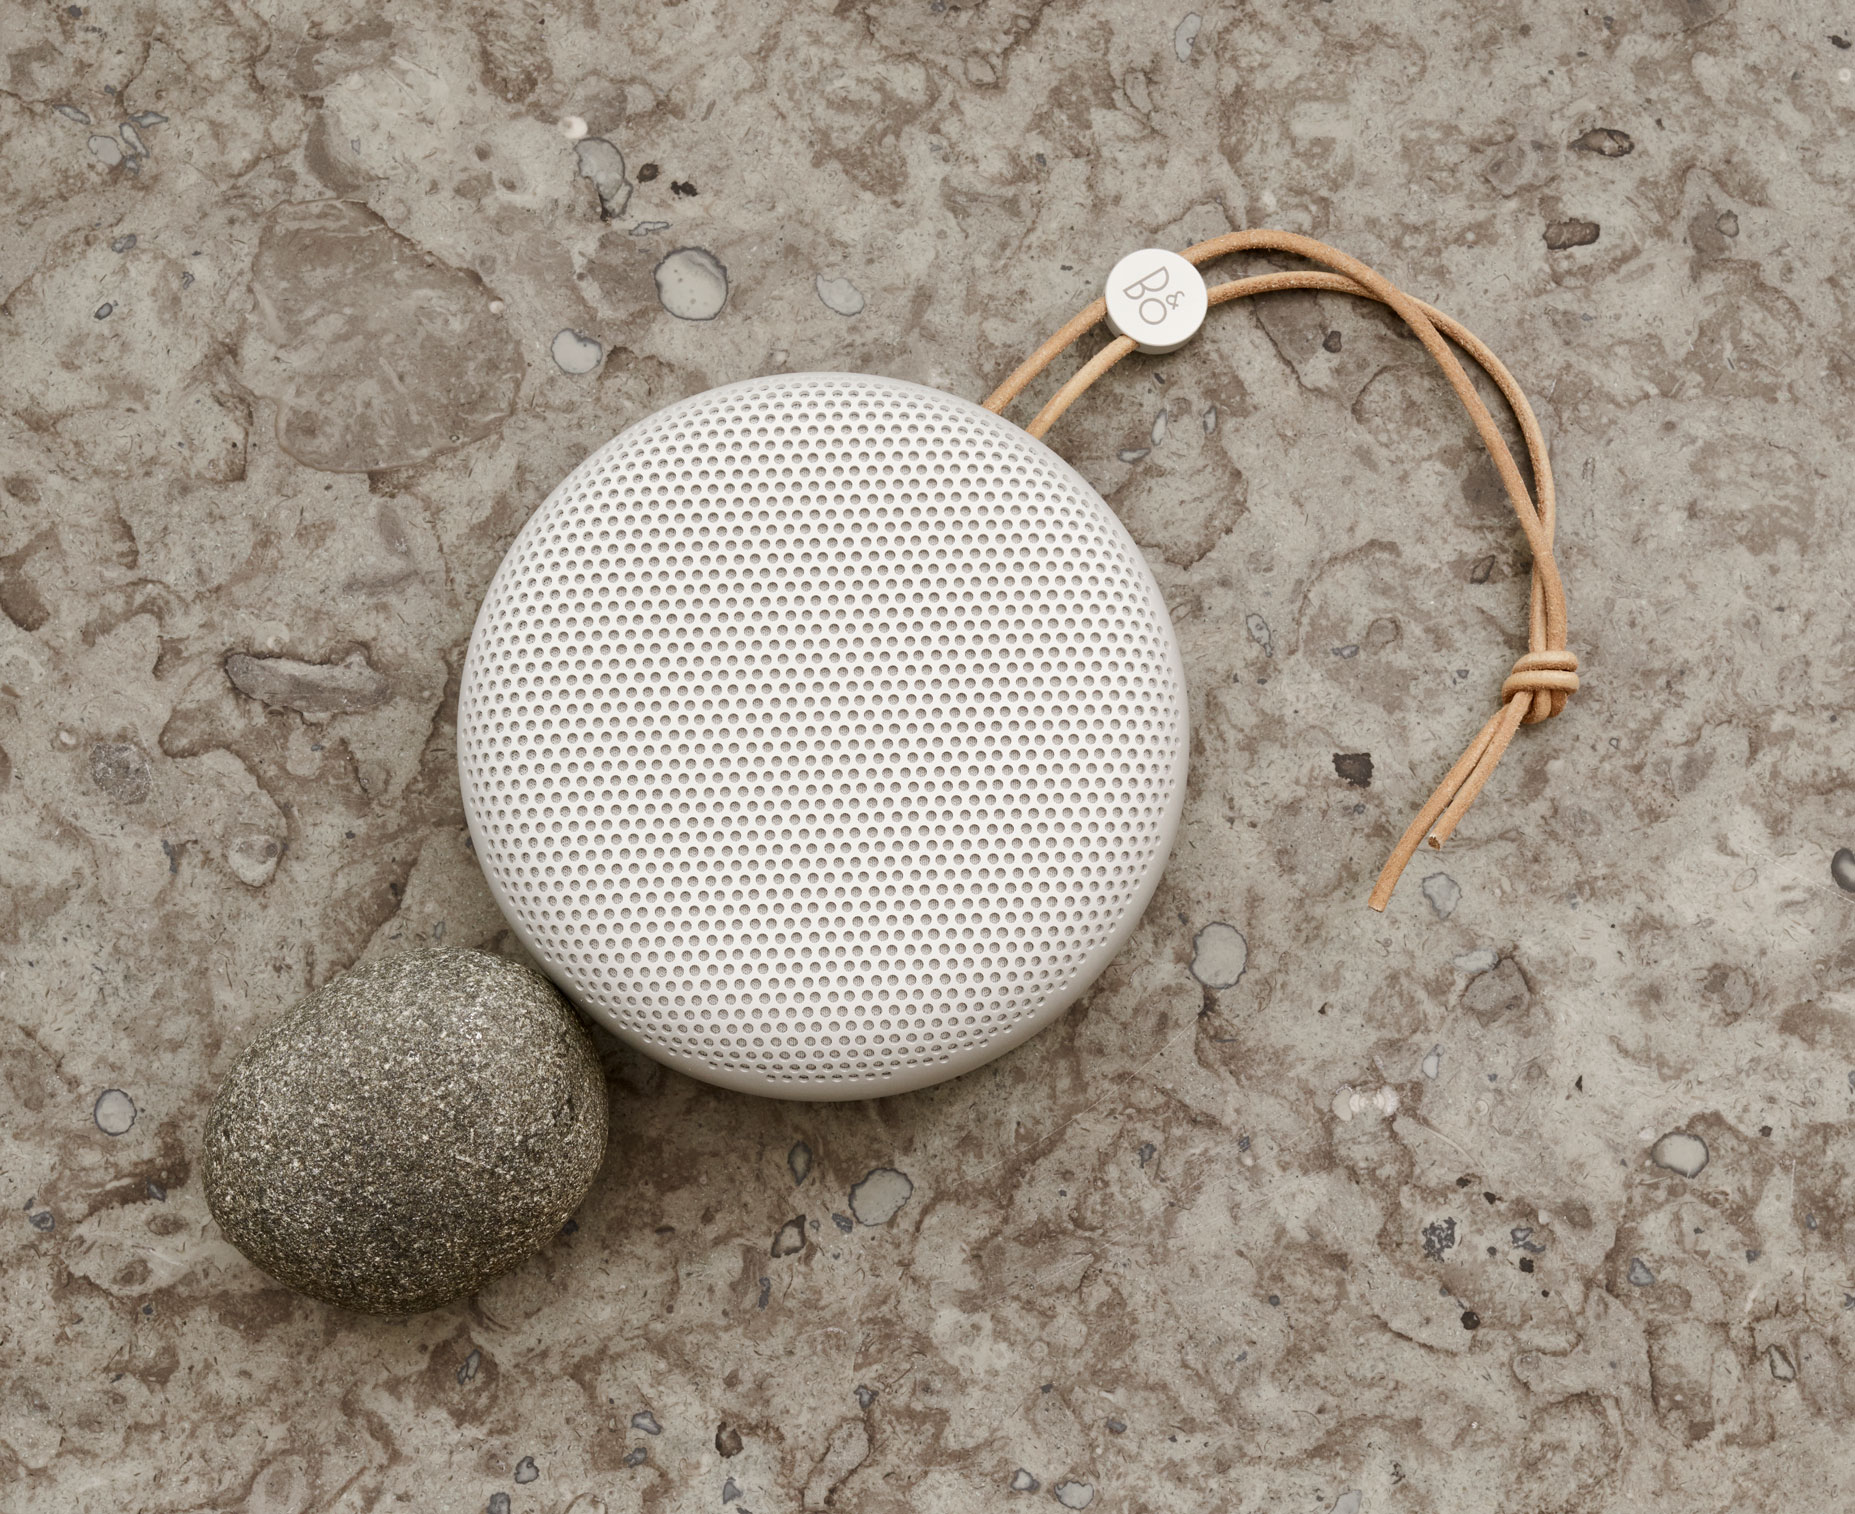 Cecilie has been collaborating with Danes Bang & Olufsen since 2014. She designed several models of portable speakers for B&O Play $ع the more affordable brand recently launched by Bang & Olufsen.